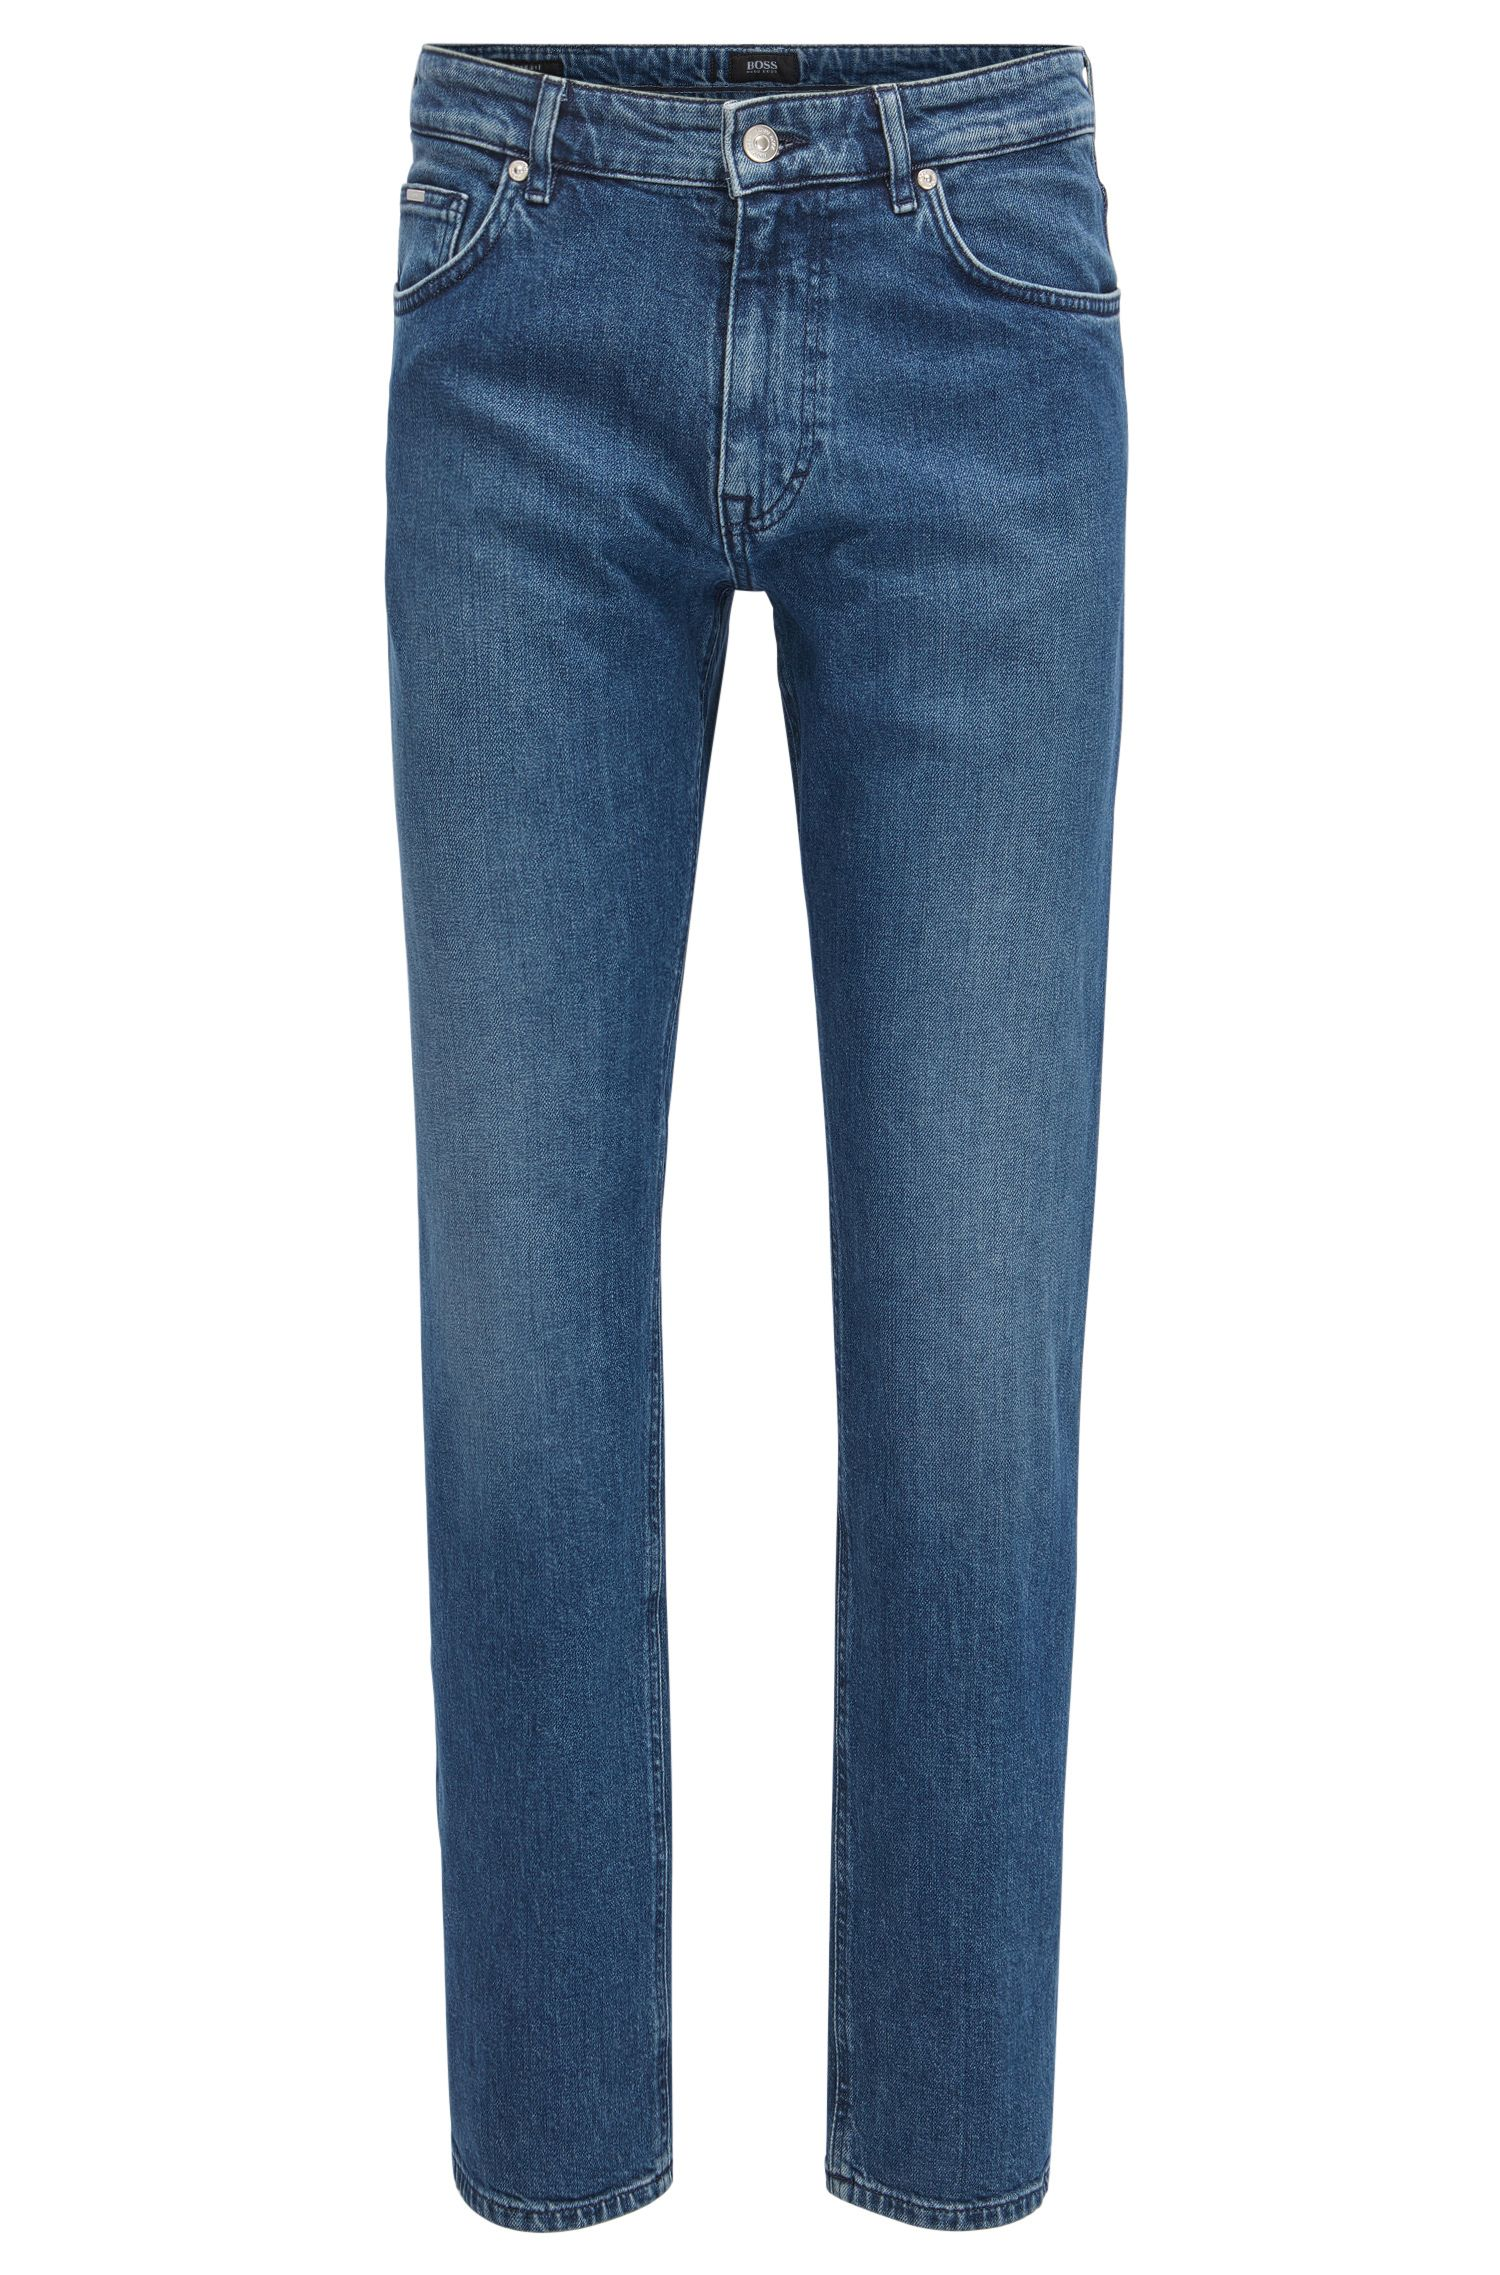 Stretch Cotton Jeans, Relaxed Fit | Albany